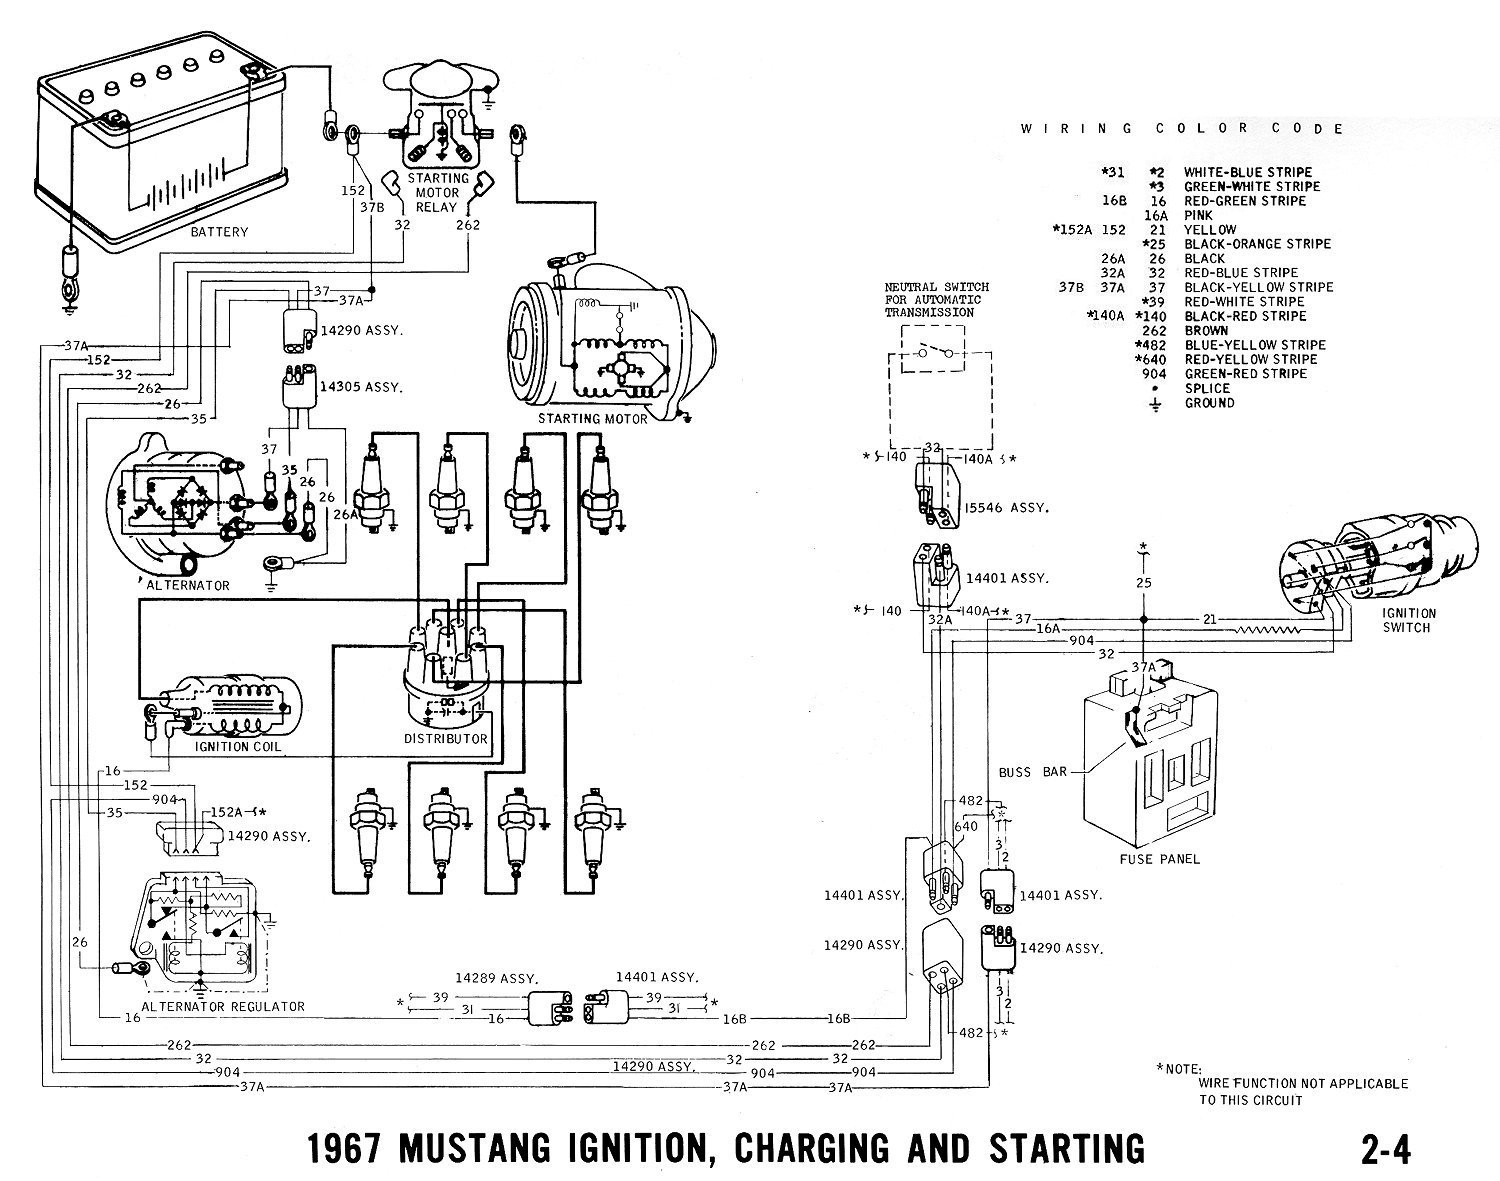 1968 f100 wiring harness data wiring diagram today 1966 Ford F100 1968 cougar wiring harness diagram wiring diagram detailed 1961 f100 1968 f100 wiring harness